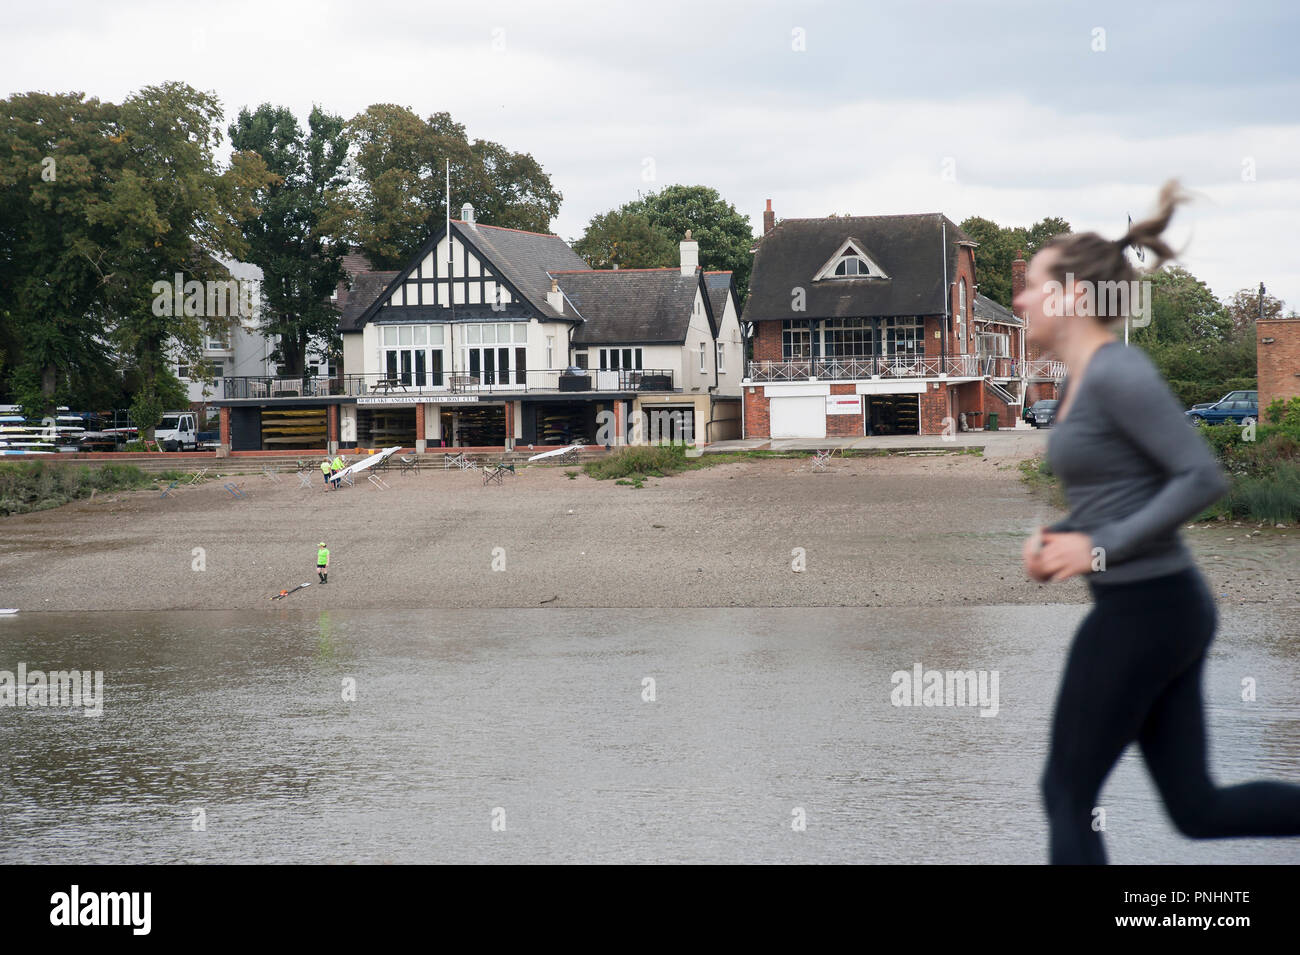 Female jogger running past Mortlake and Anglian Boat Club, London, UK. on opposite bank of River Thames. - Stock Image